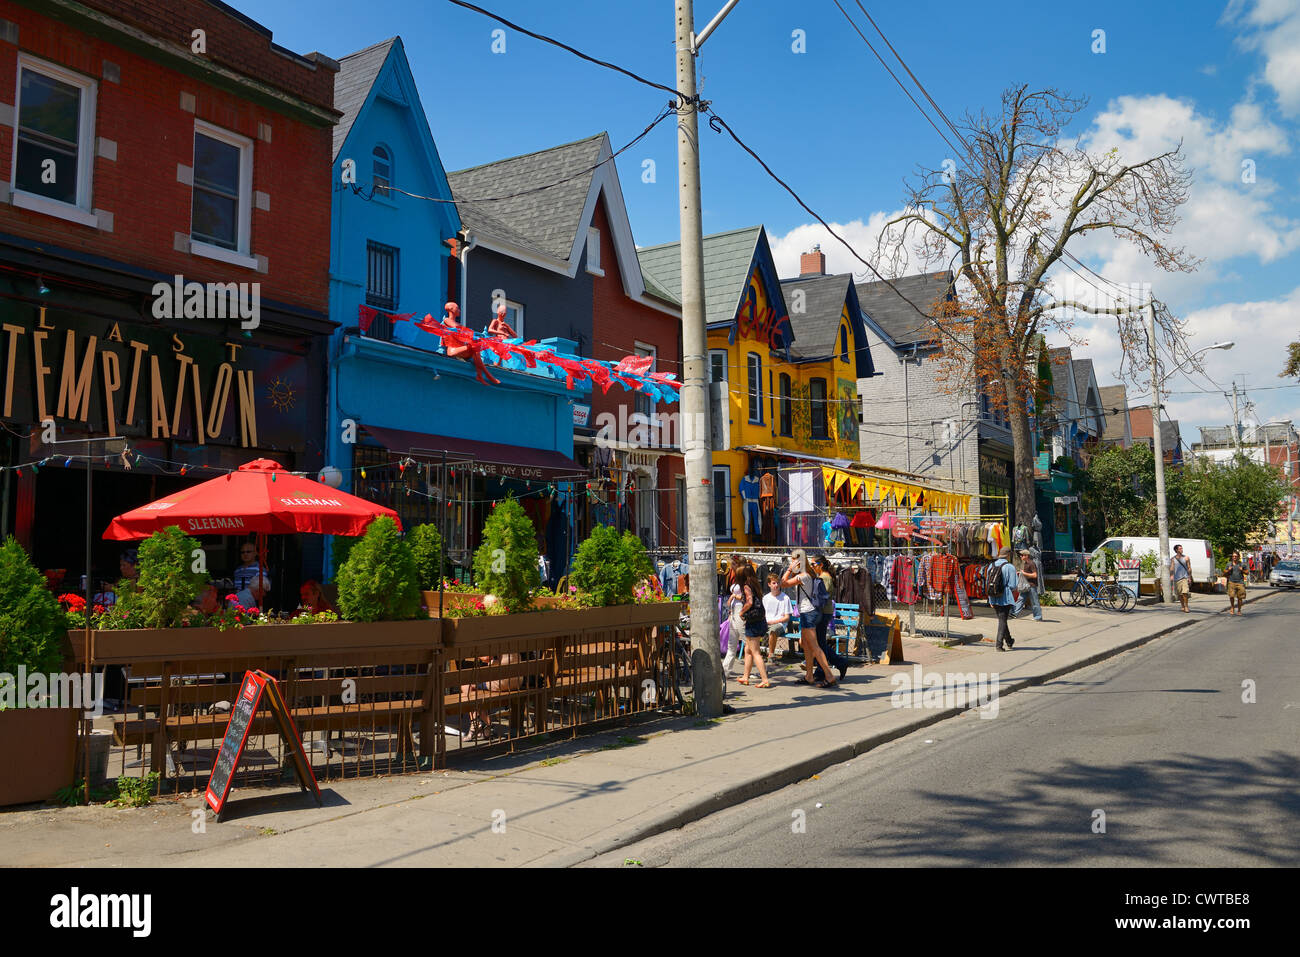 Colorful shops and buildings on Kensington Avenue Market in Toronto in summer - Stock Image